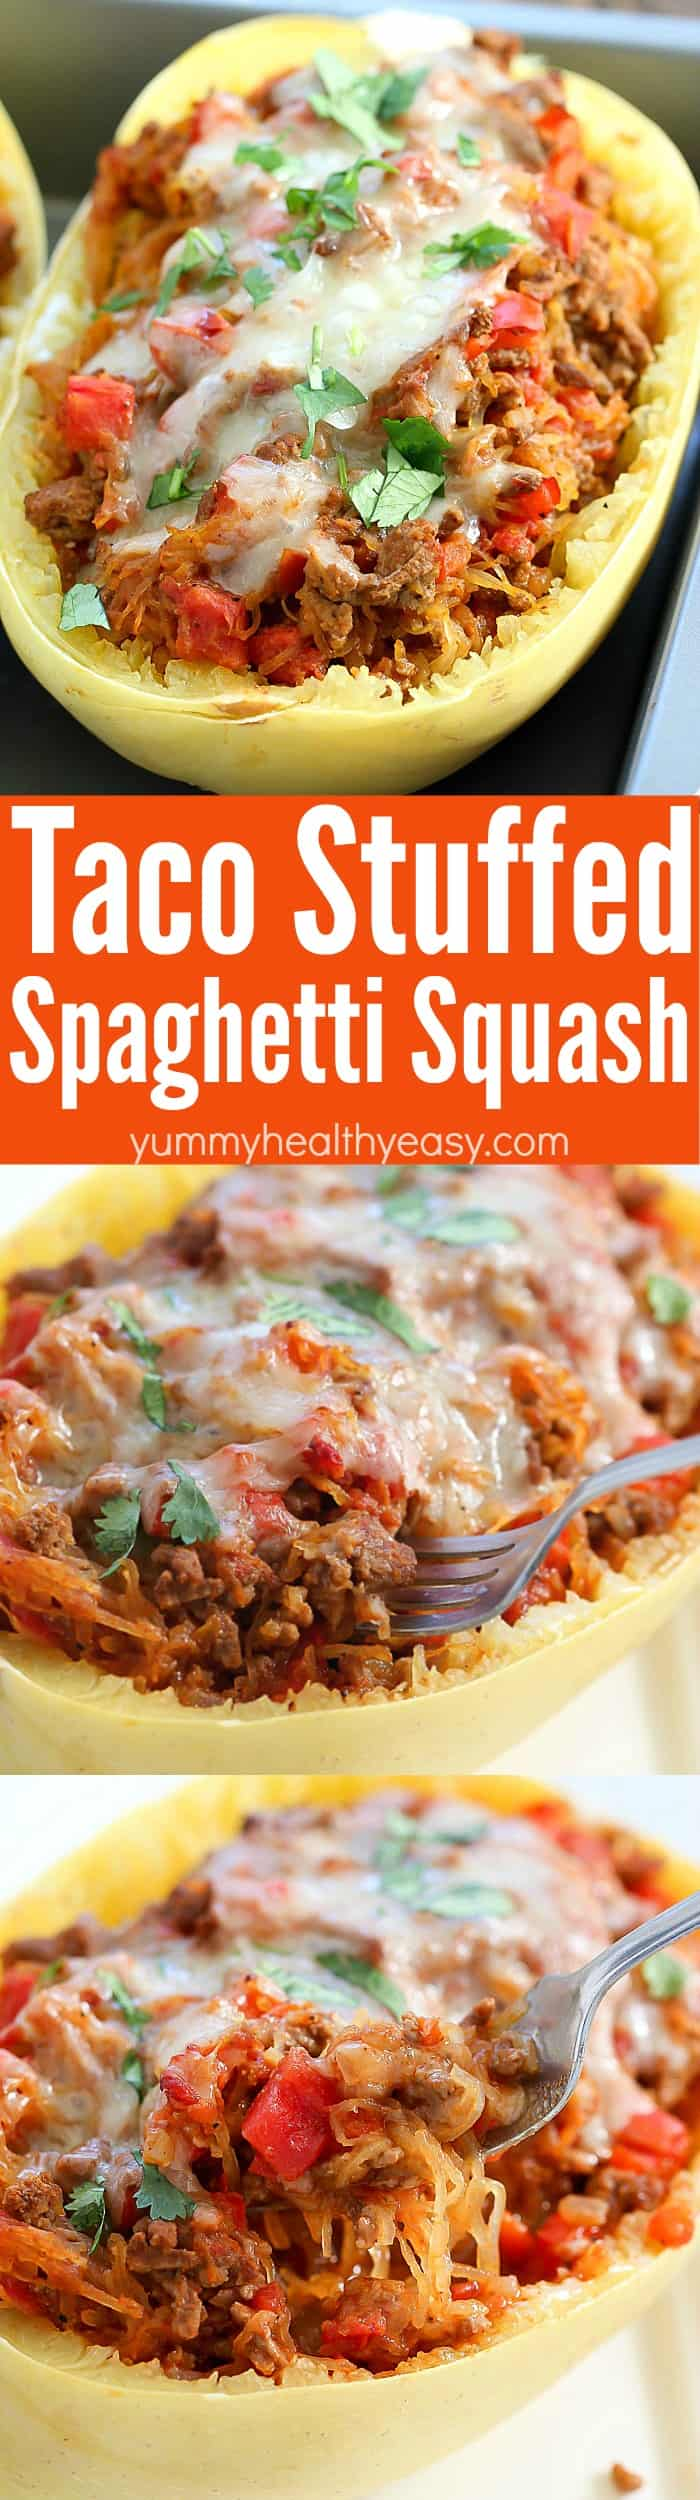 Satisfy your taco craving with a lower carb version with this Taco Stuffed Spaghetti Squash! All the yumminess of tacos mixed with spaghetti squash for a satisfying, low carb dinner!